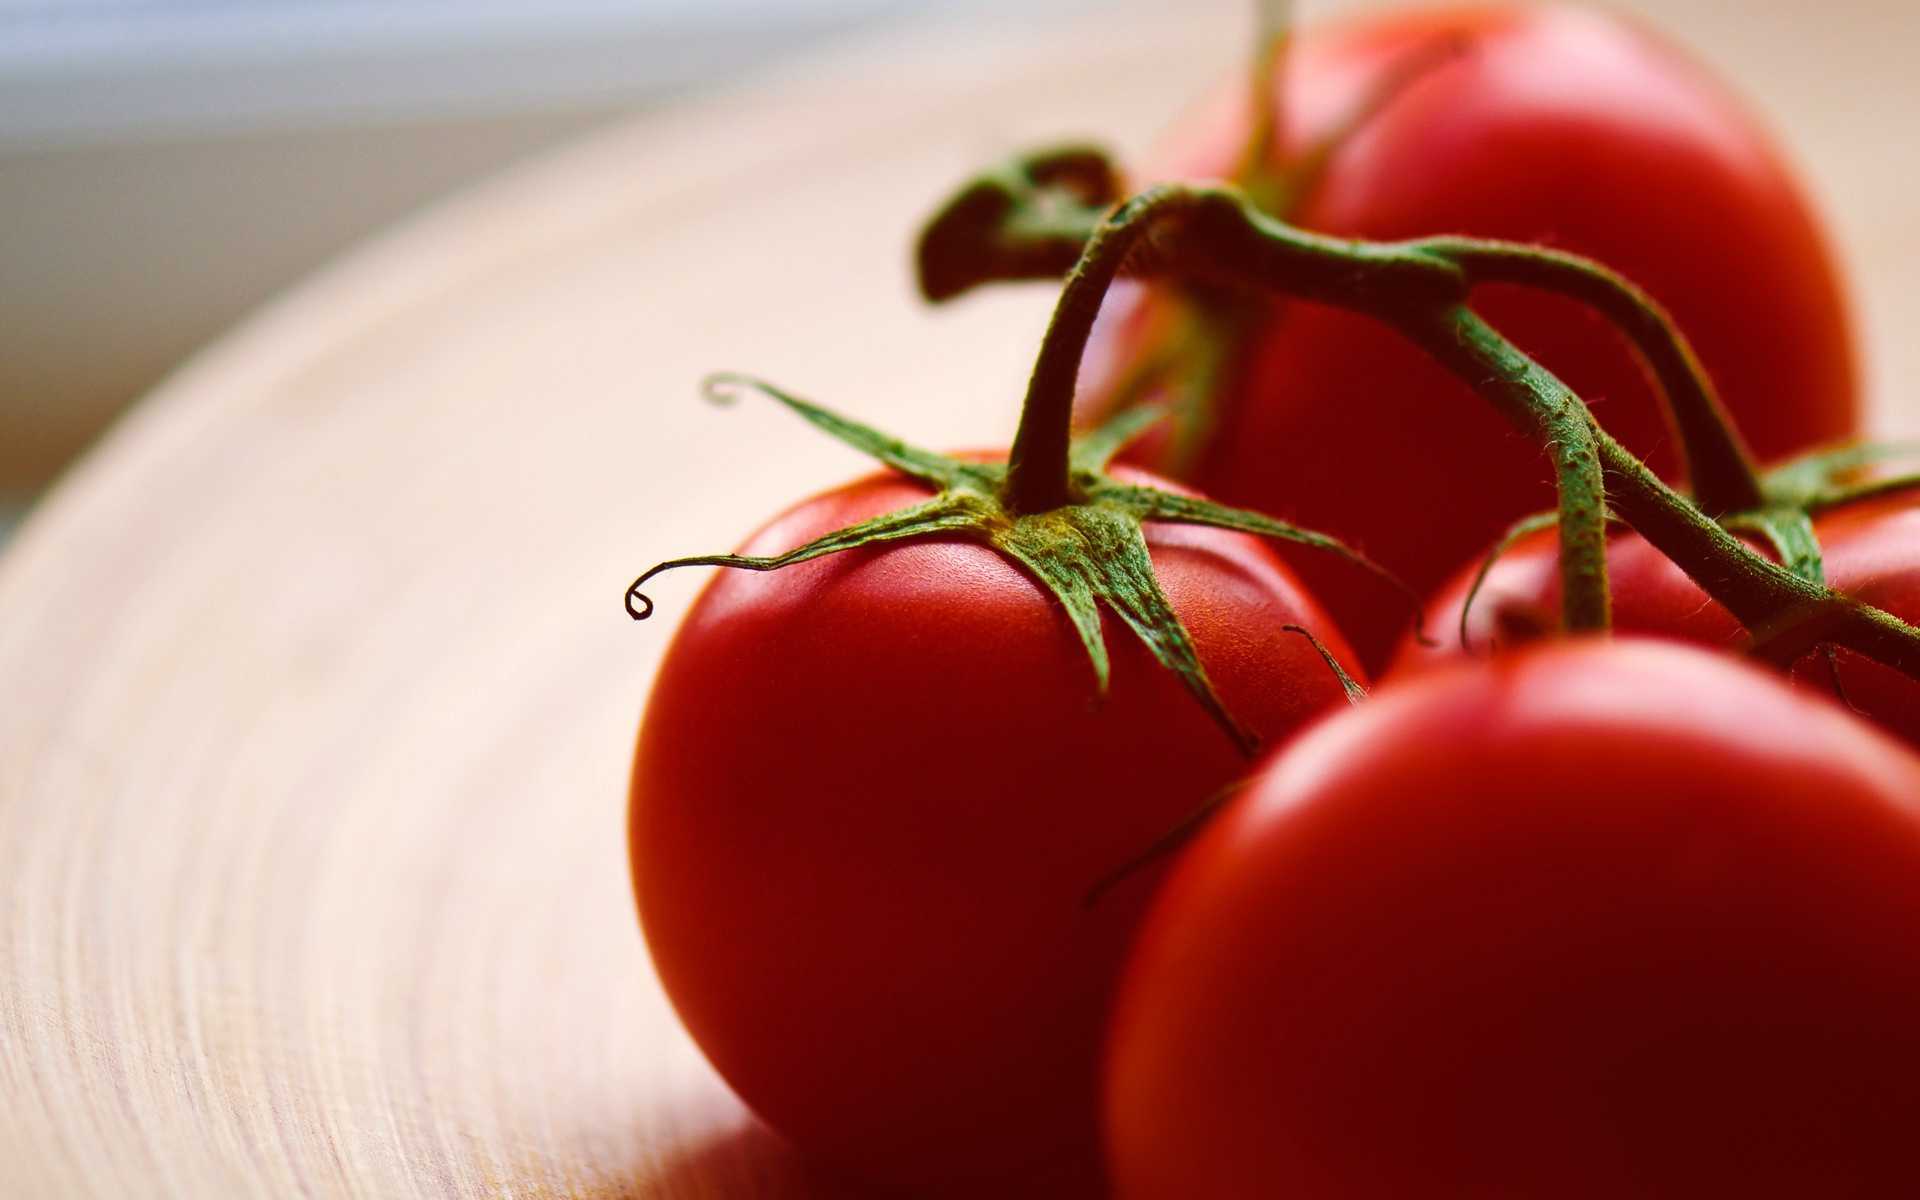 background_tomato